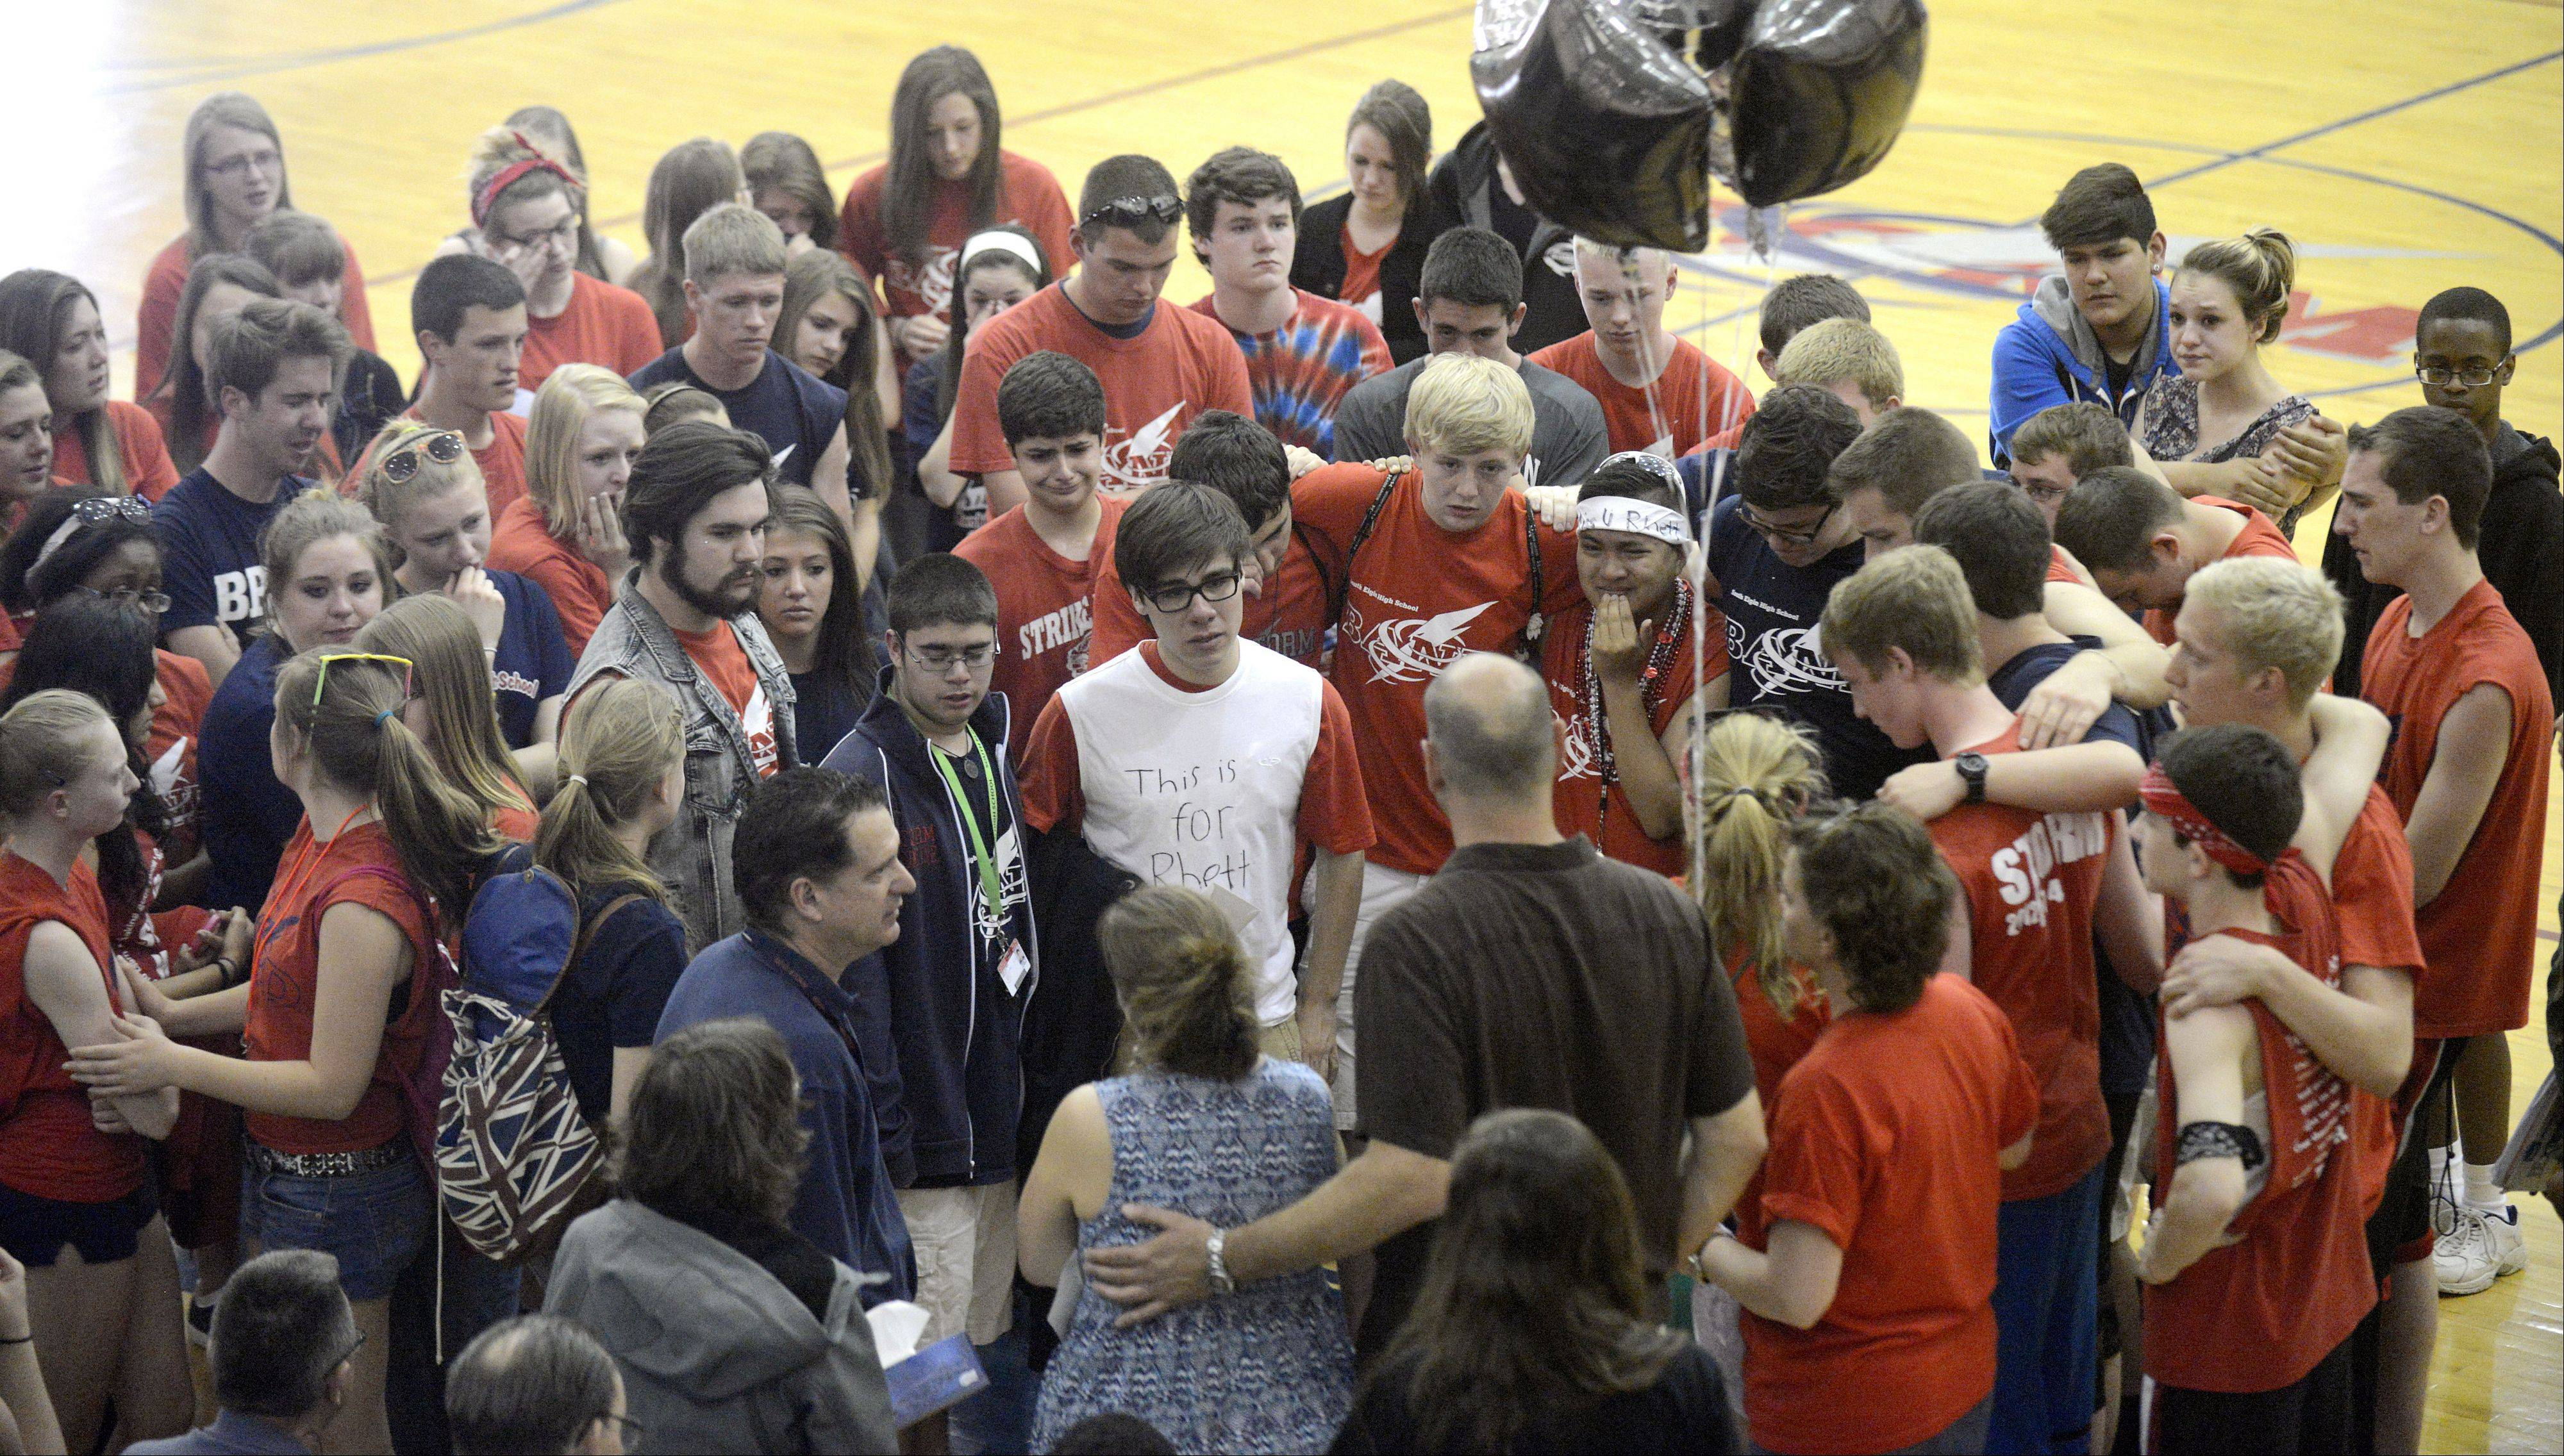 Students from the South Elgin High School drum line and other classmates gather in support for the family of their friend Rhett Lundy, who died in his sleep Wednesday.